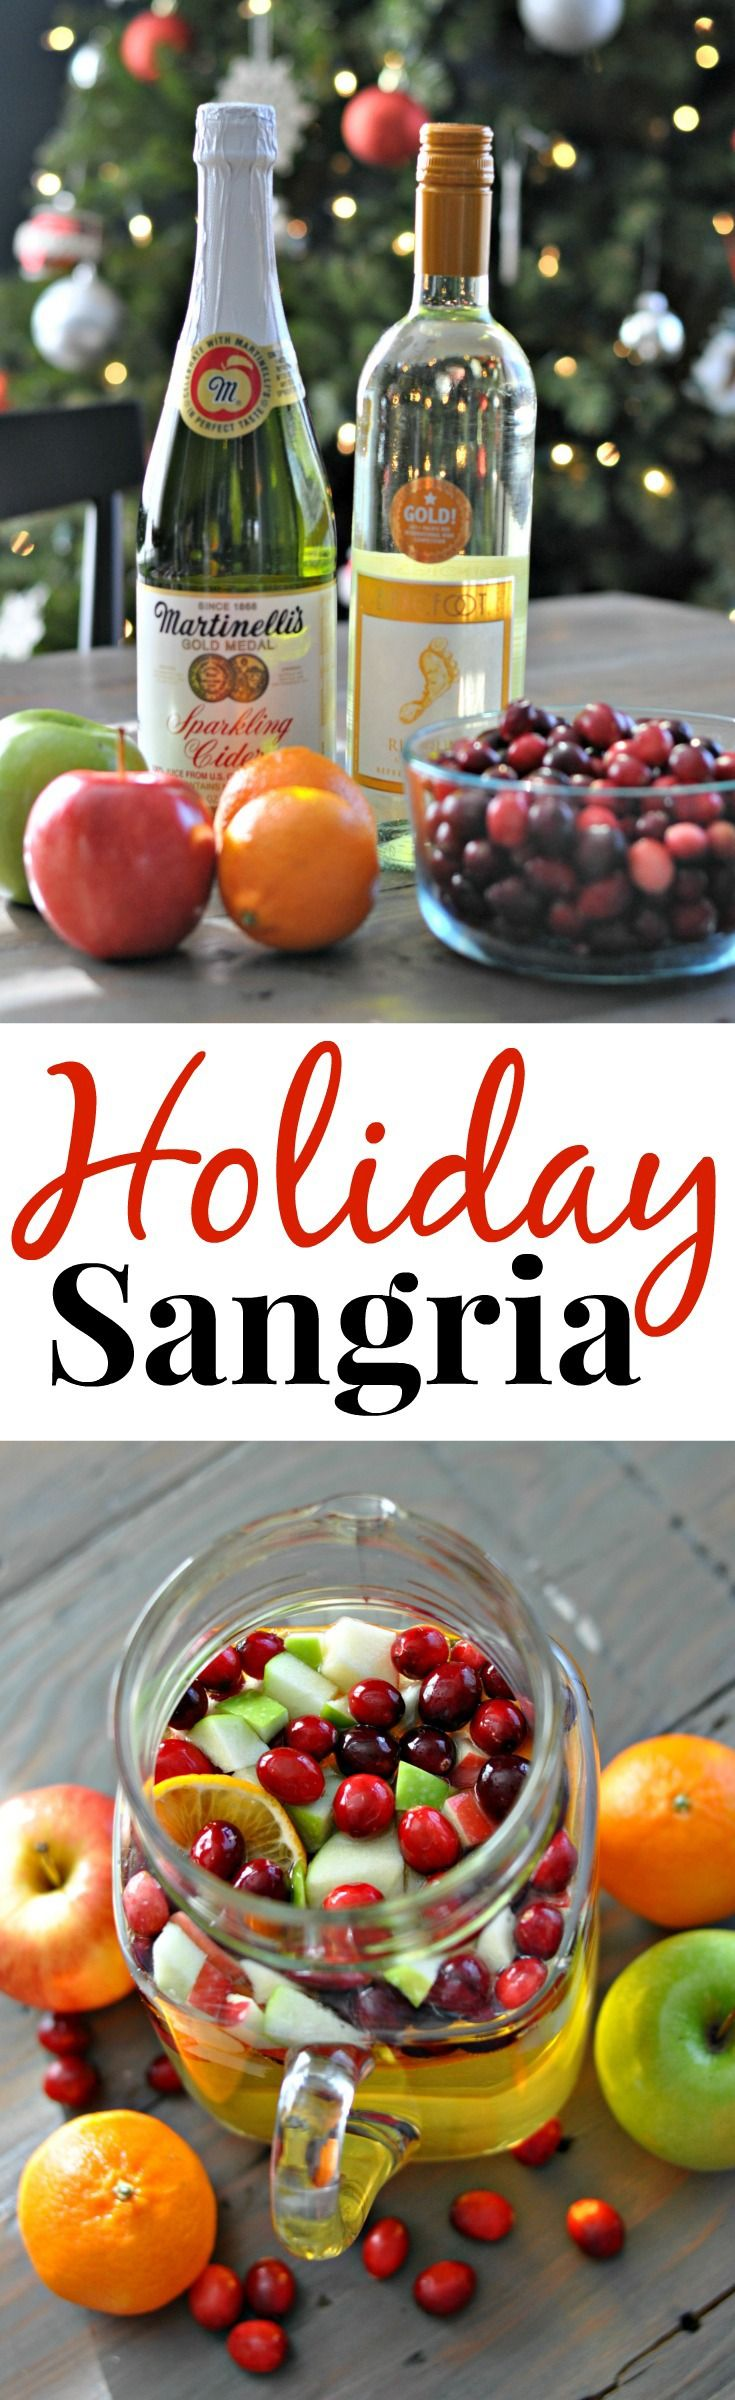 asics shoes uk sale Holiday Sangria  Beautiful drink to serve your guests  Made without the wine and sparkling white grape instead of cider